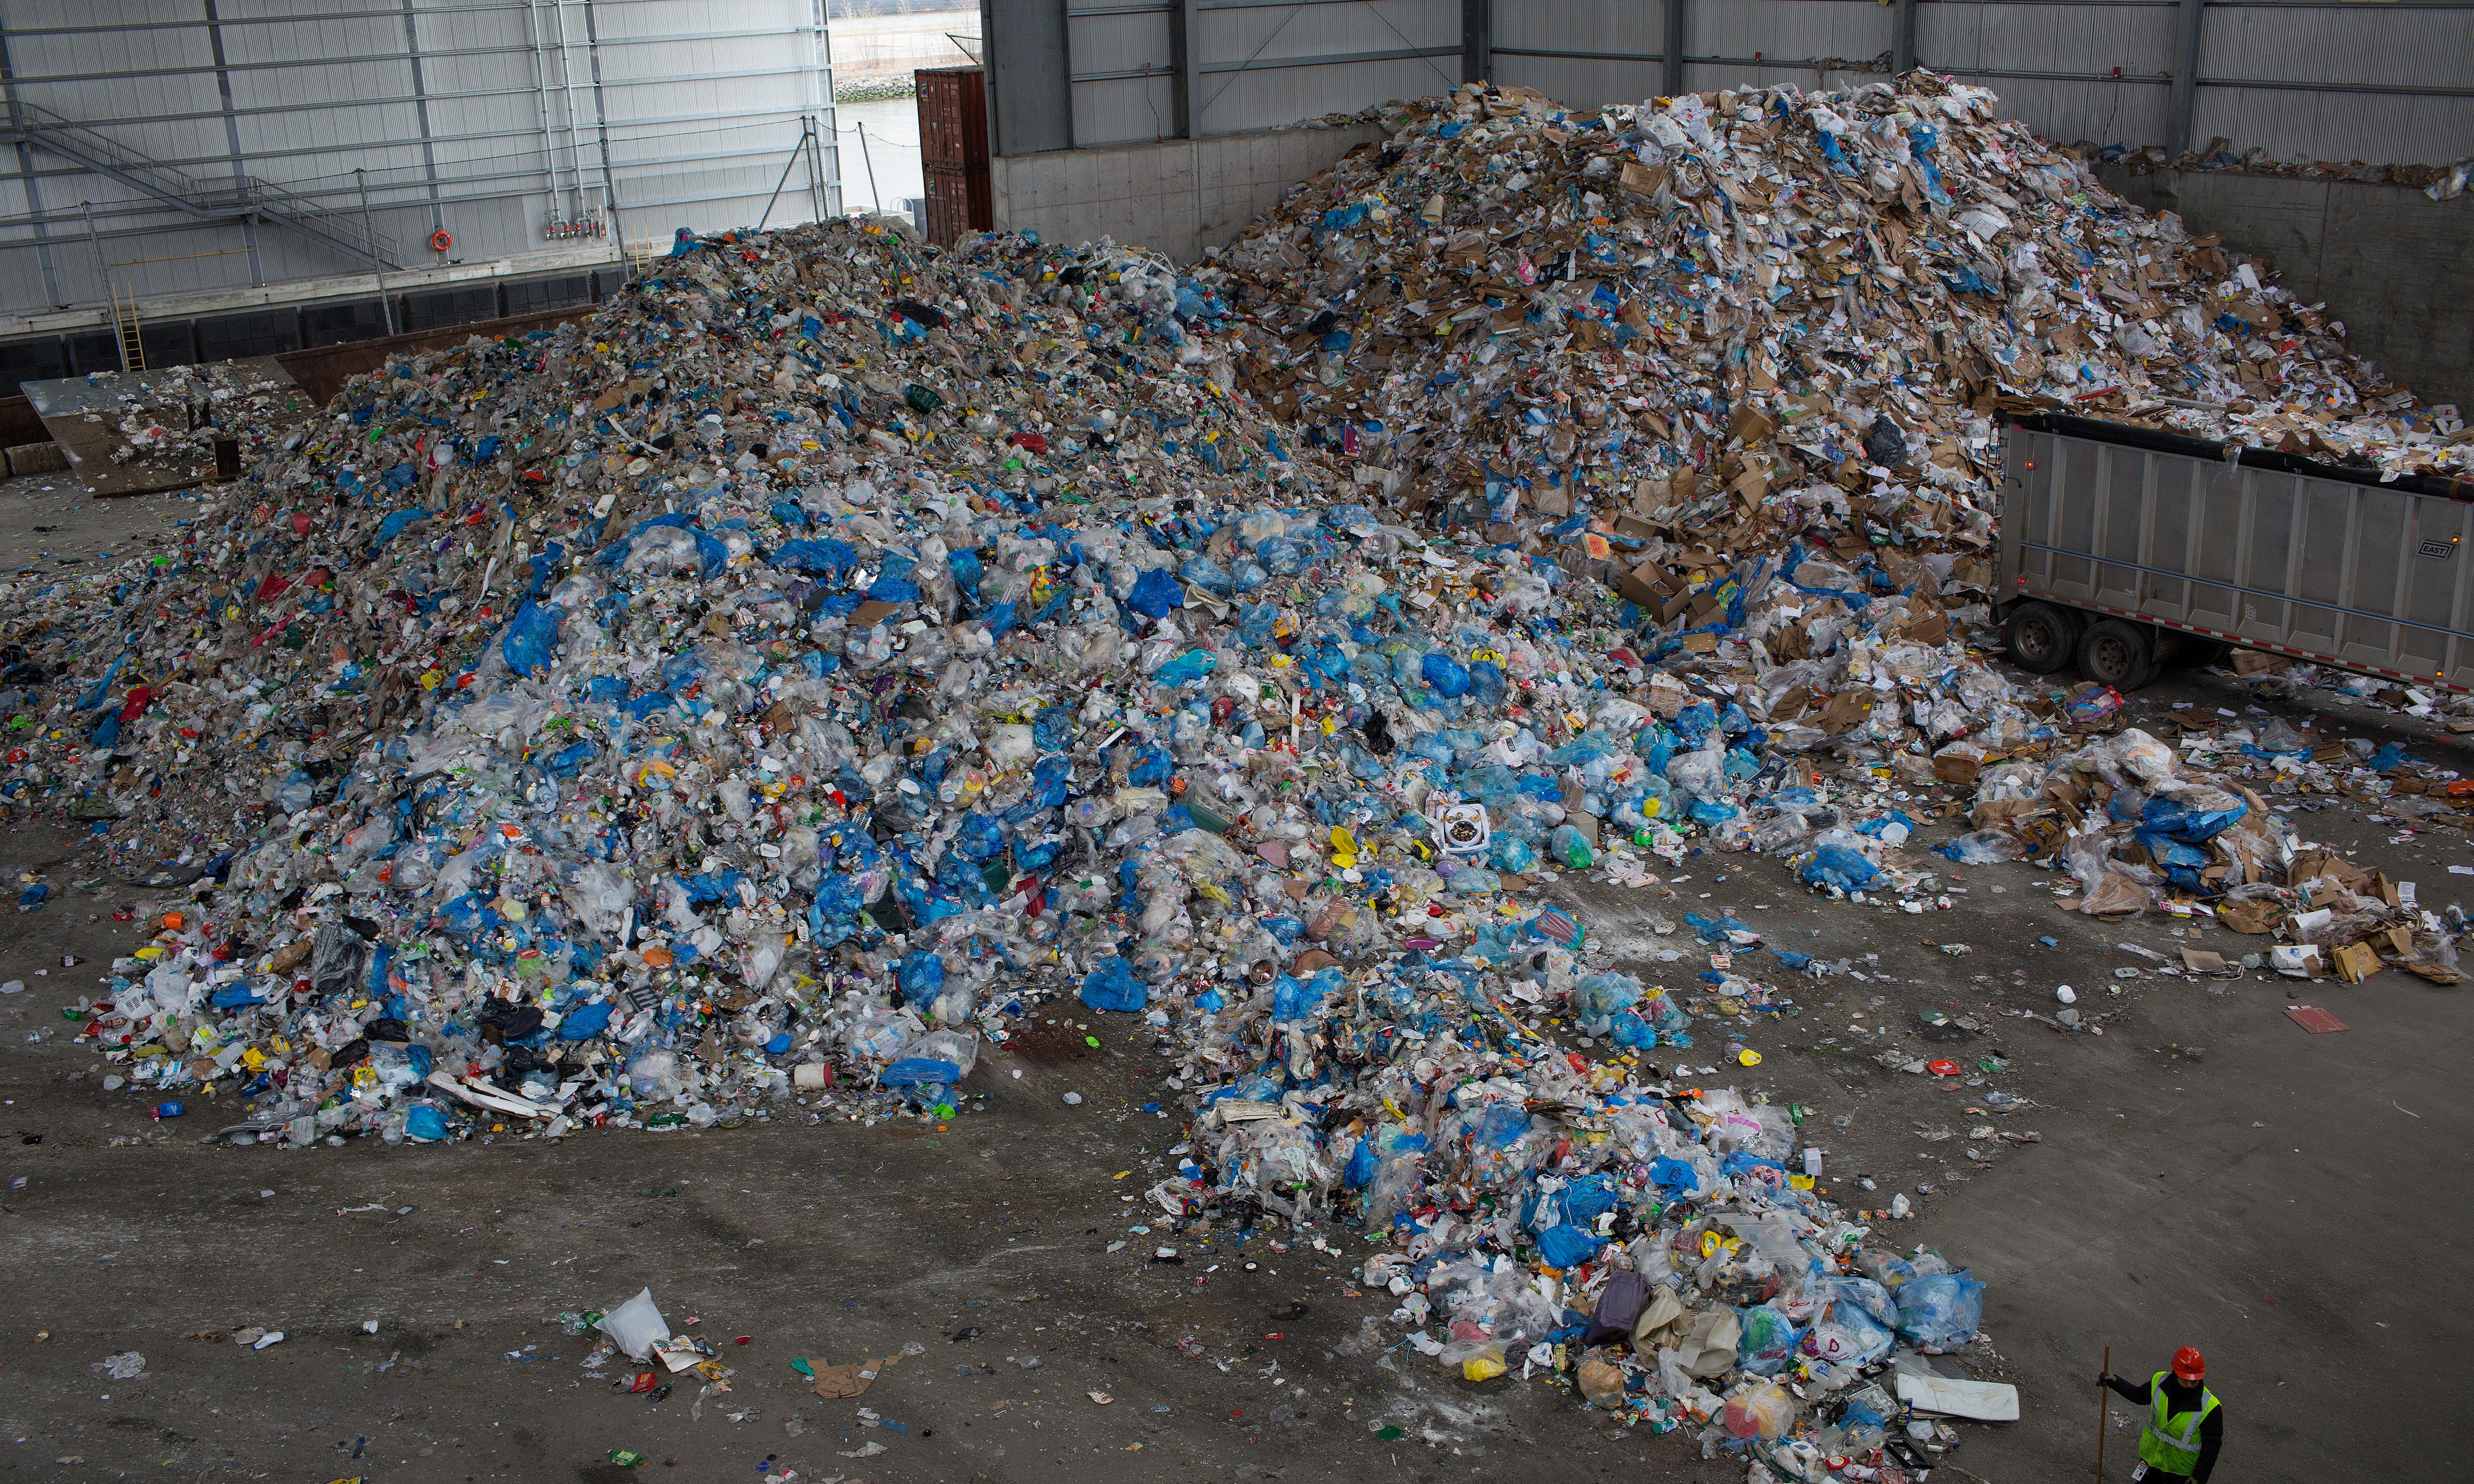 US produces far more waste and recycles far less of it than other developed countries